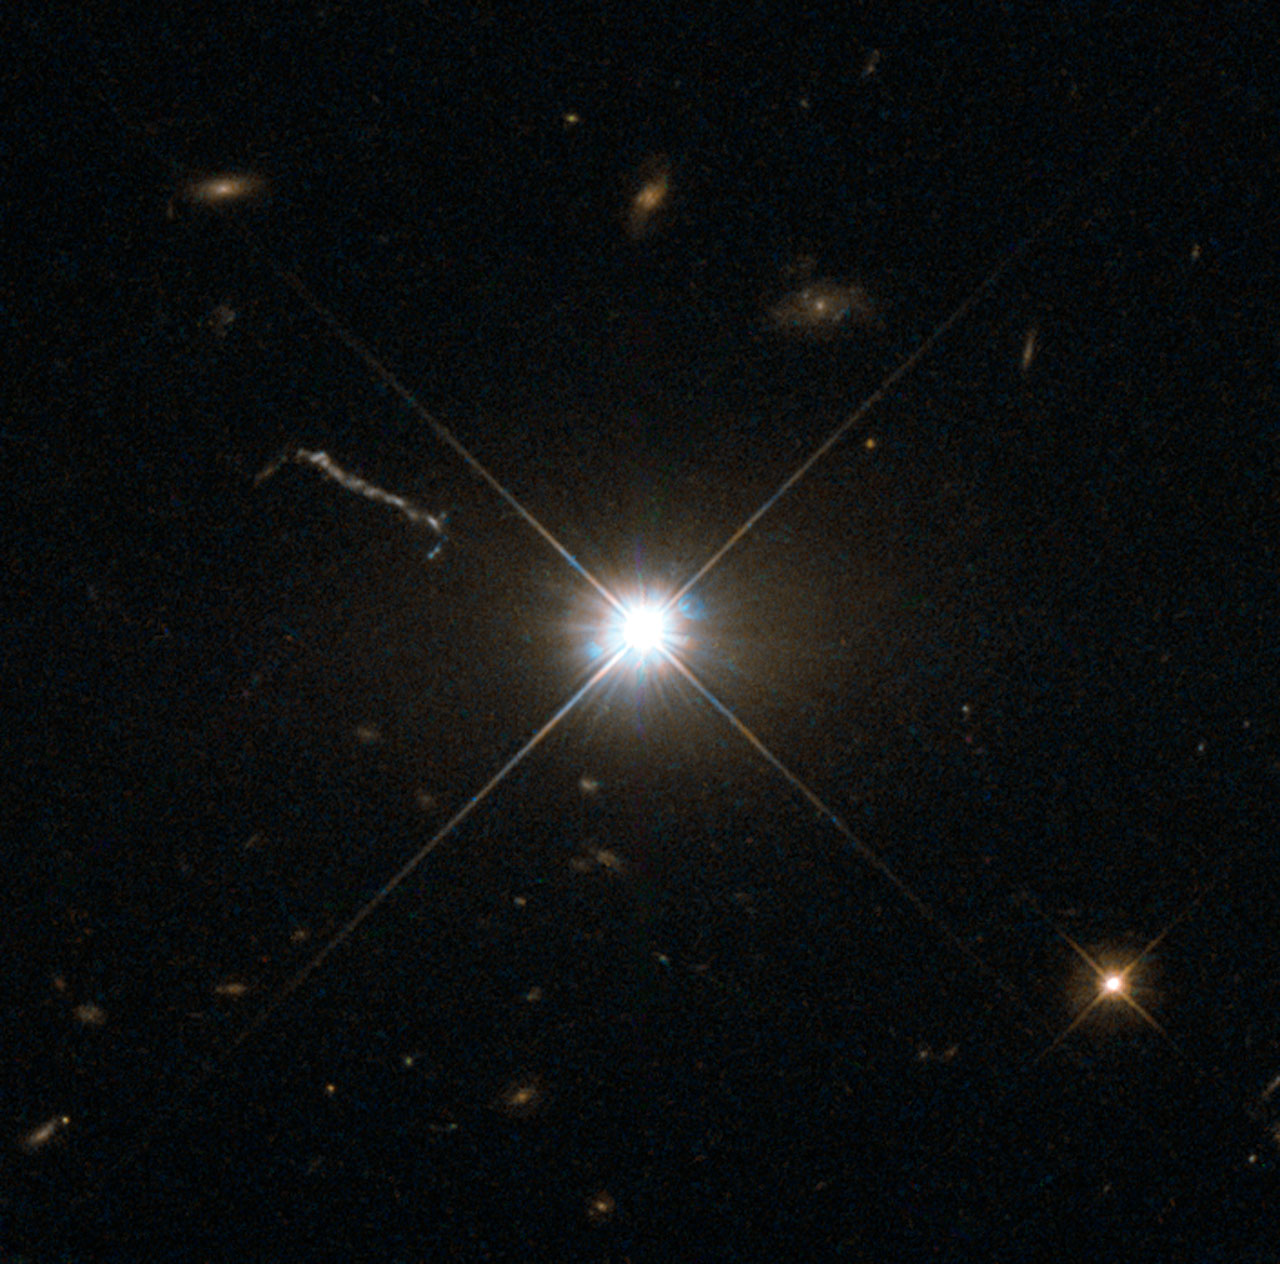 3C 273 is the brightest quasar. At magnitude +12.9 it's visible in medium size amateur scopes (credit:- ESA/Hubble/NASA)